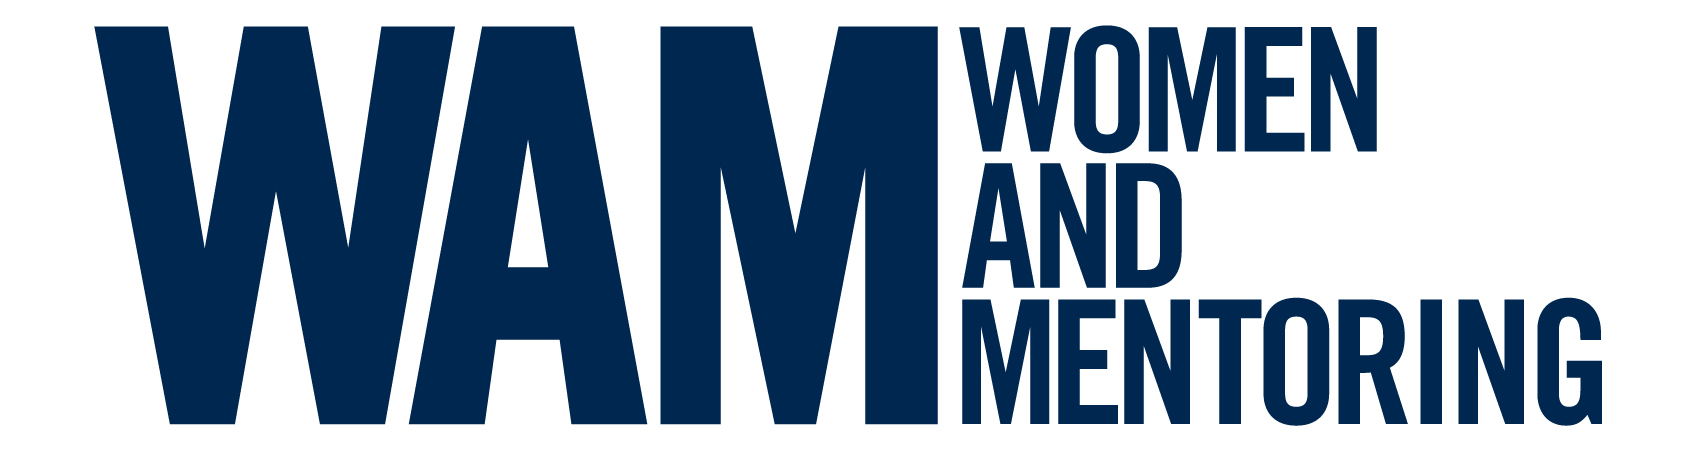 Women and Mentoring (WAM) is a unique, early intervention mentoring program that supports women charged with a criminal offence by matching them with supportive female mentors. -